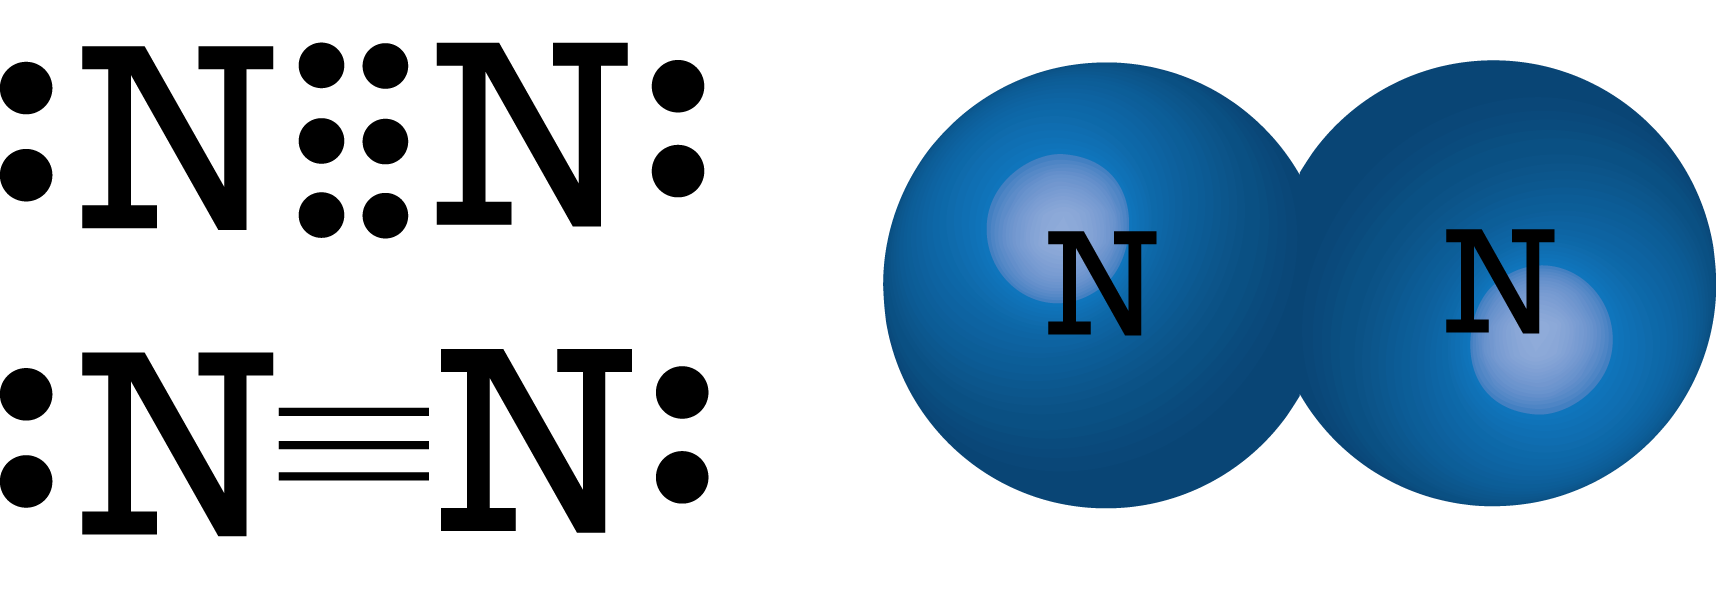 N2-lewis Structure image information